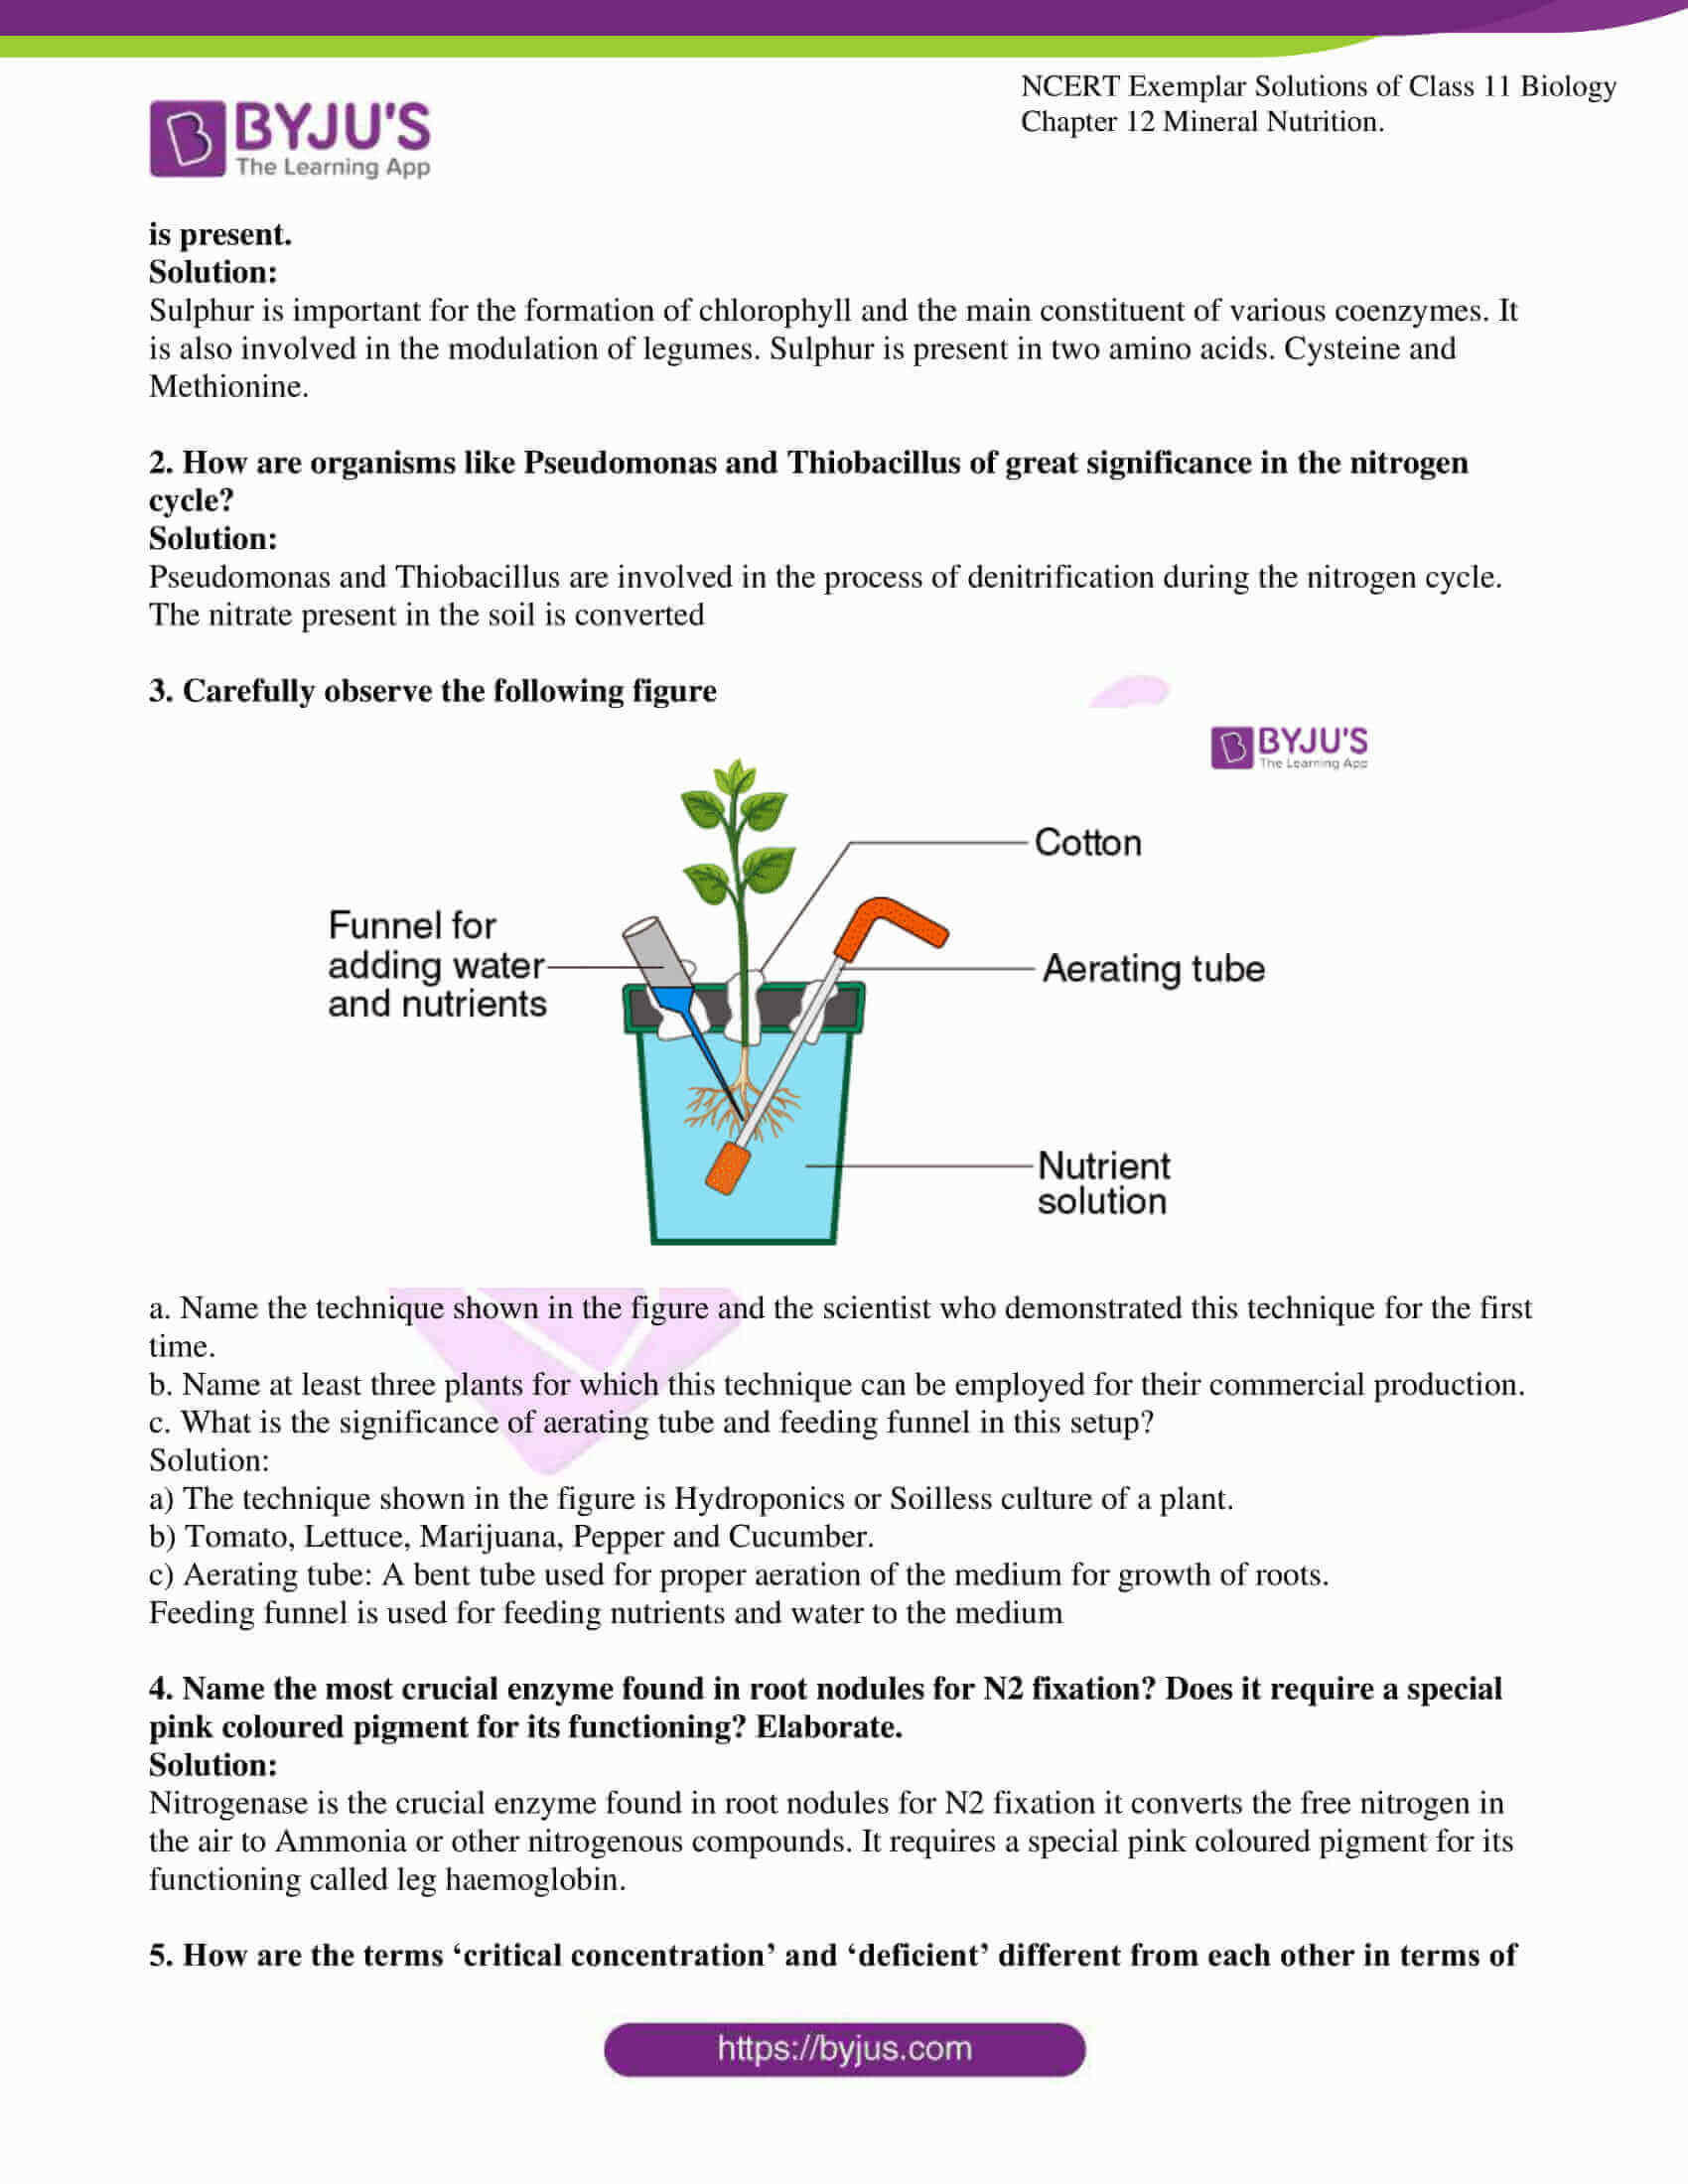 ncert exemplar solutions class 11 biology chapter 12 5